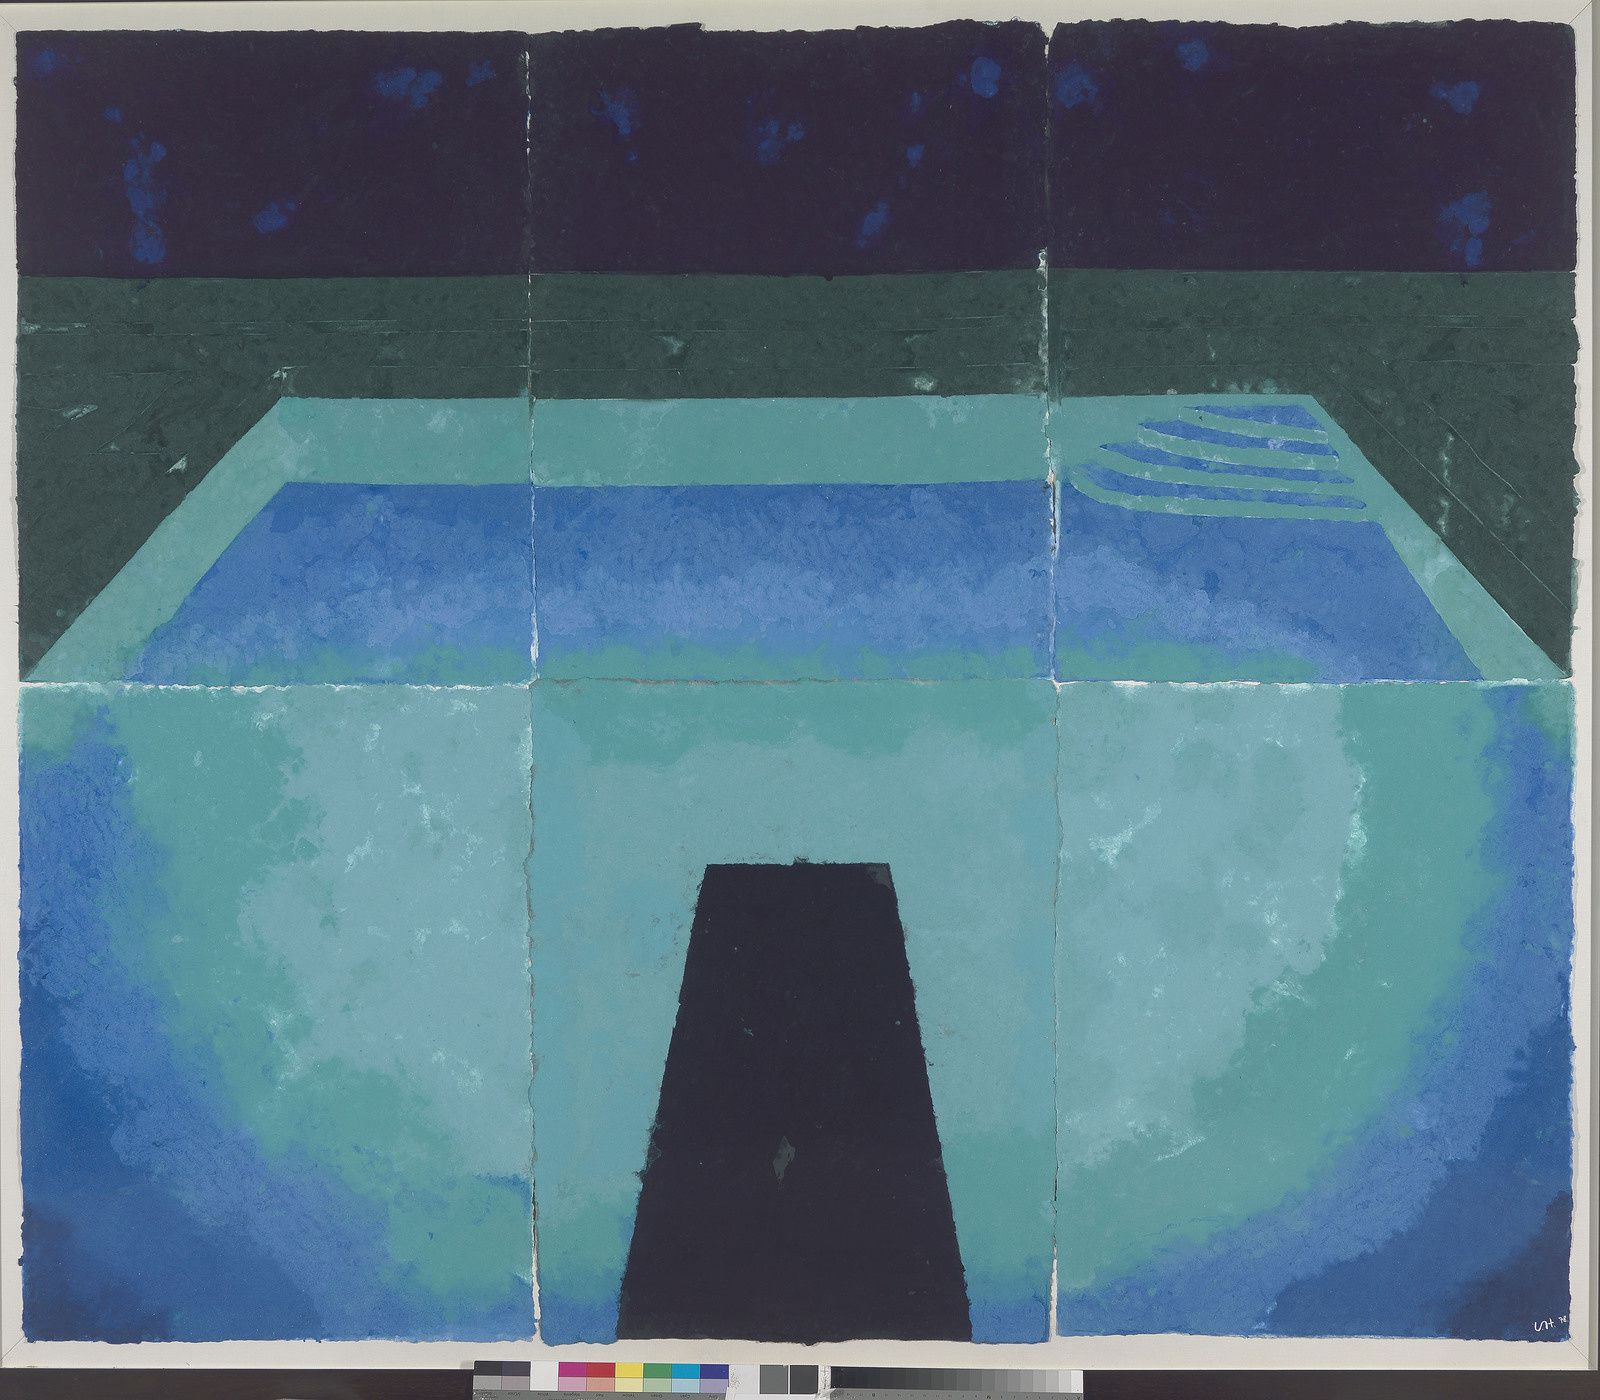 """Schwimmbad Mitternacht"", 1978 de David HOCKNEY - Courtesy Richard Schmidt"